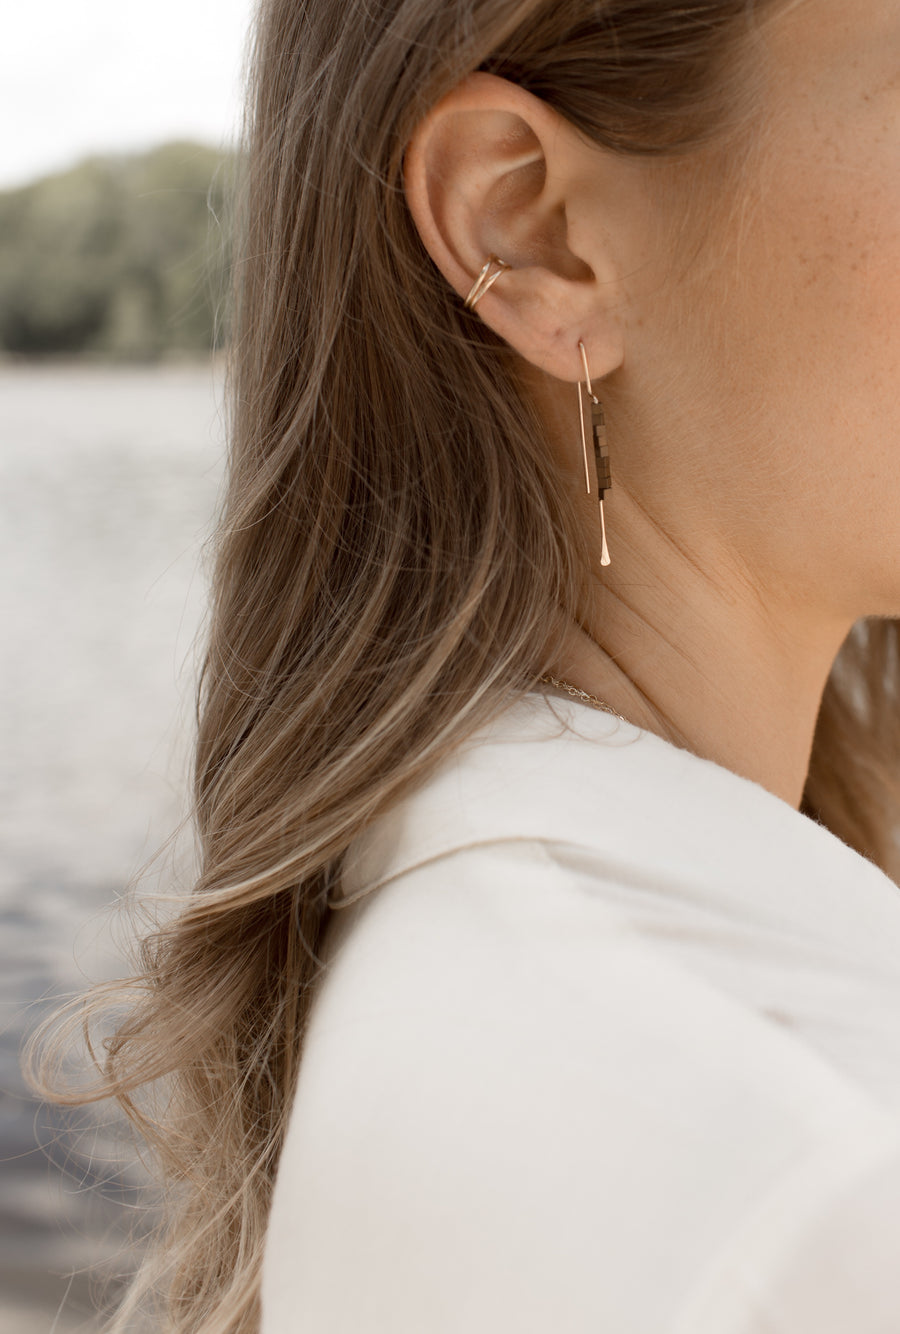 Ear Cuff - Token Jewelry